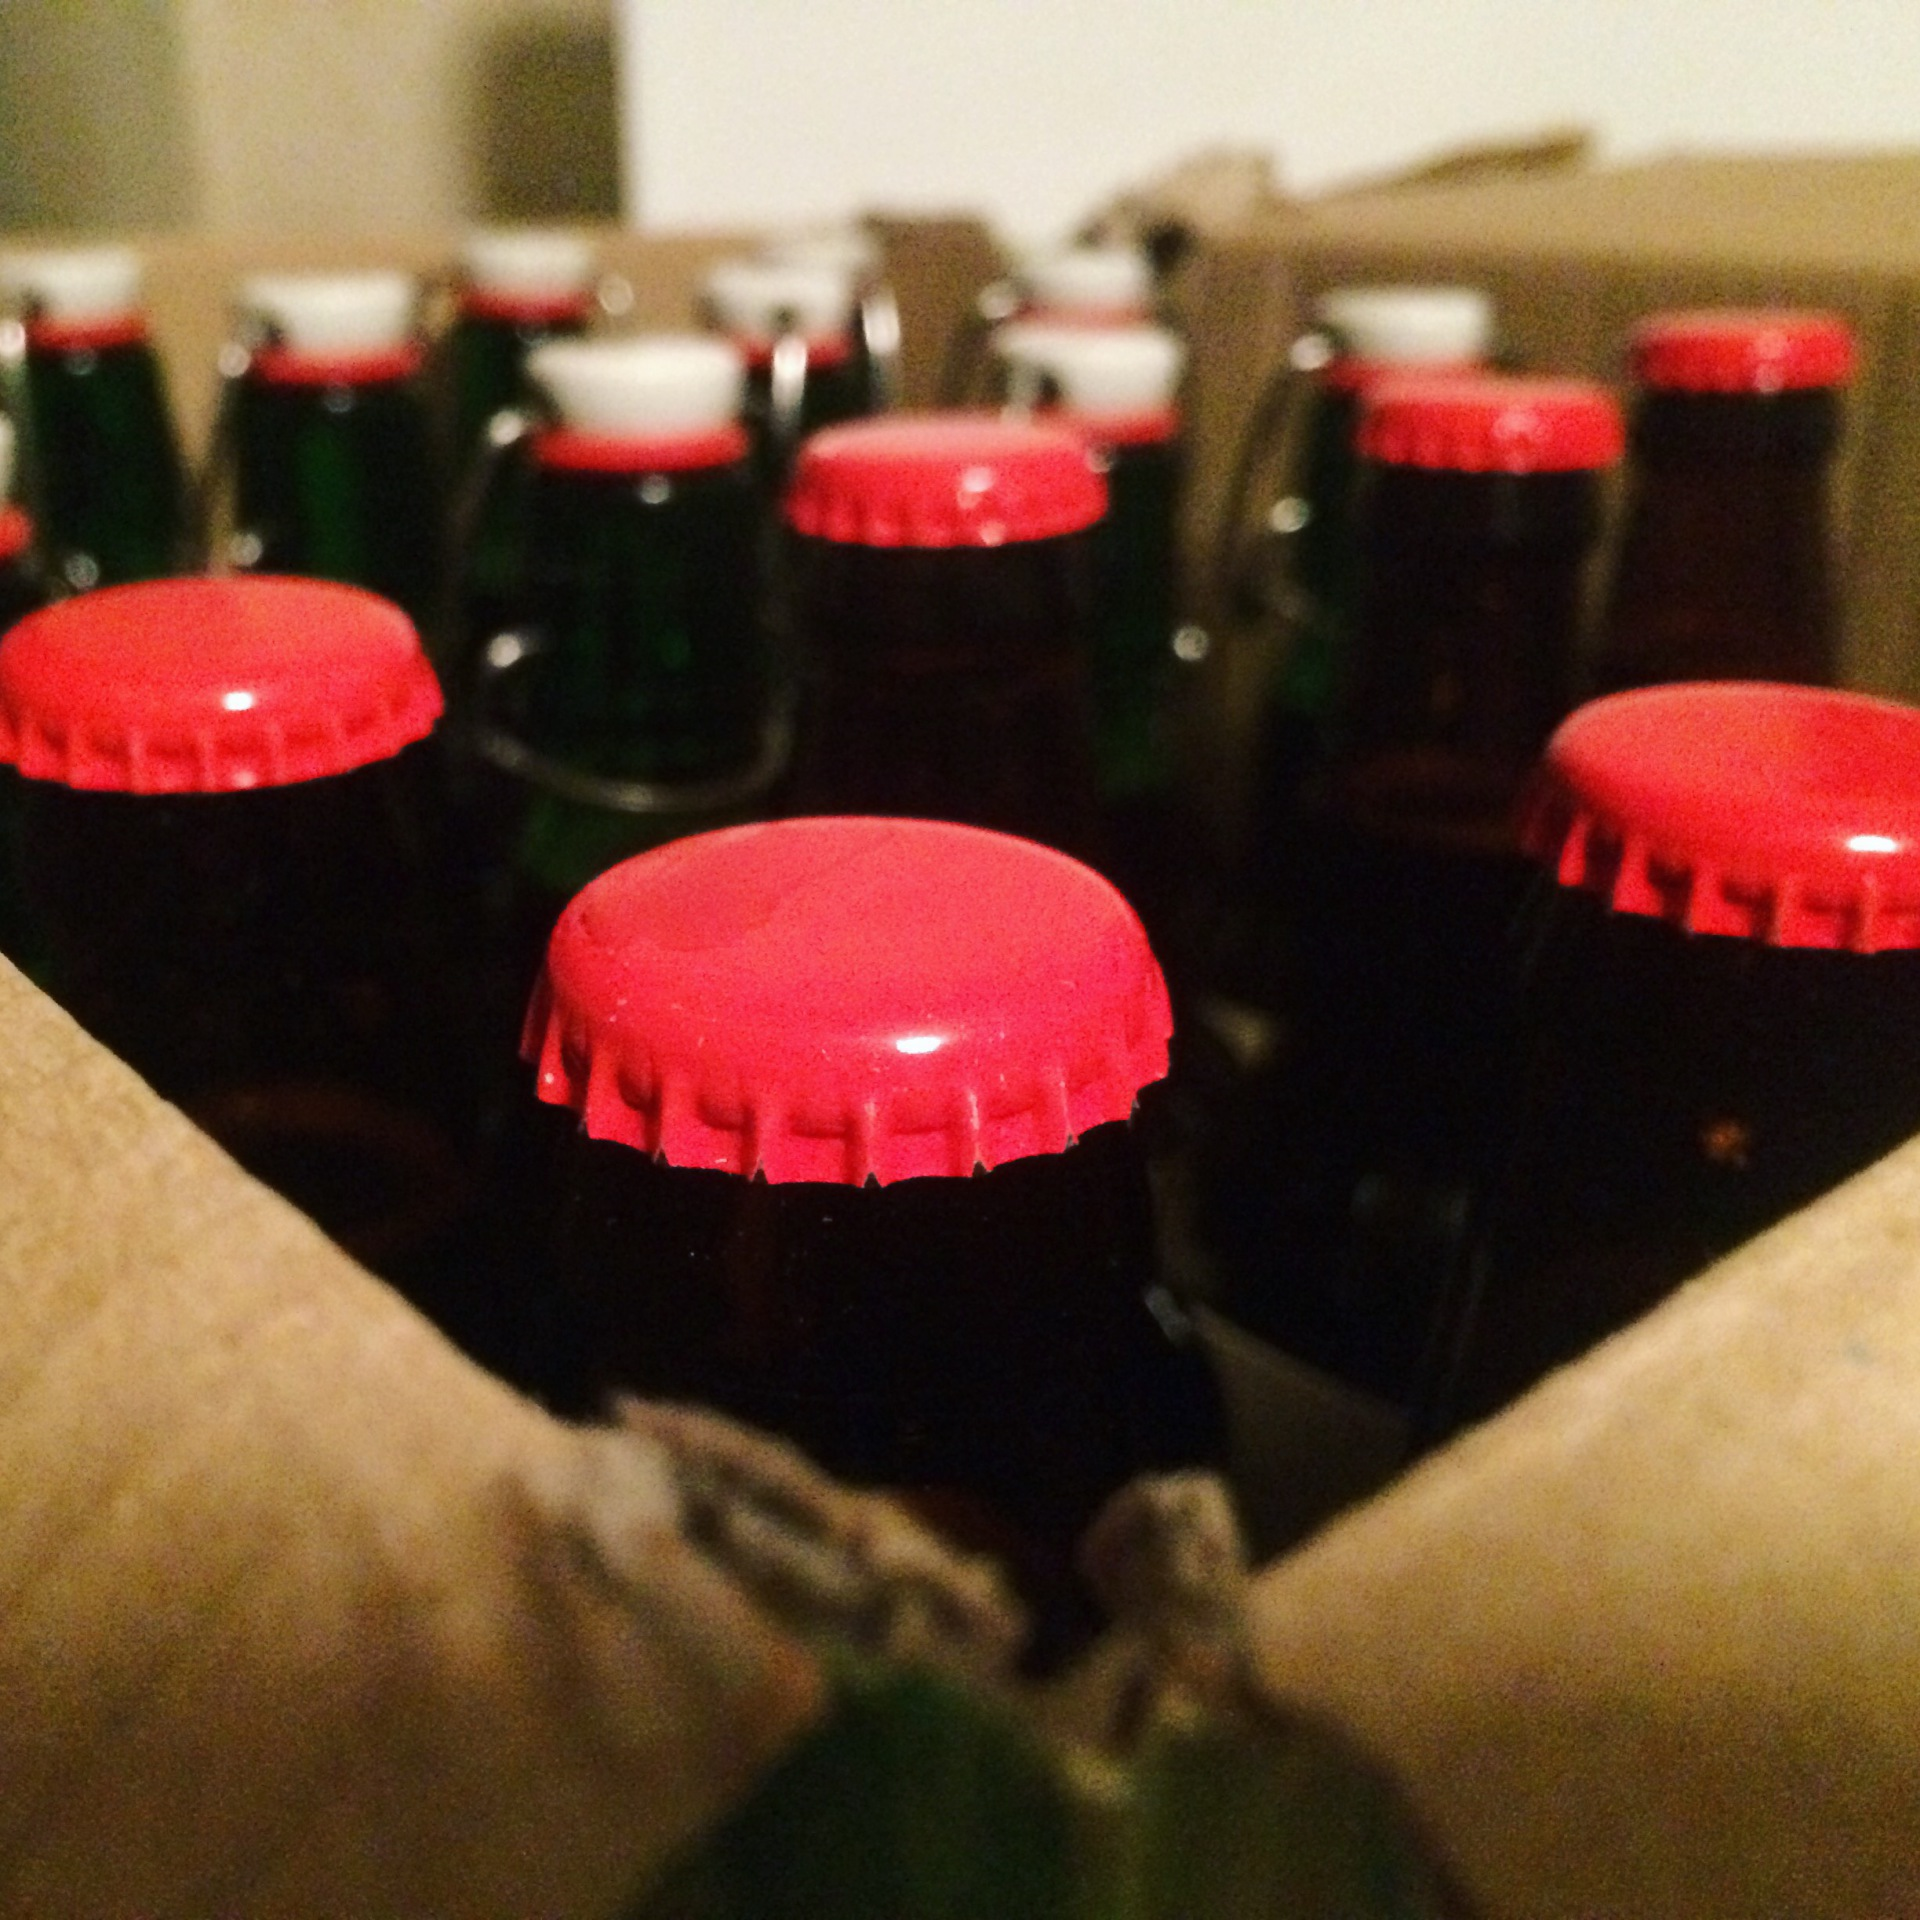 The Imperial Stout all Bottle Up